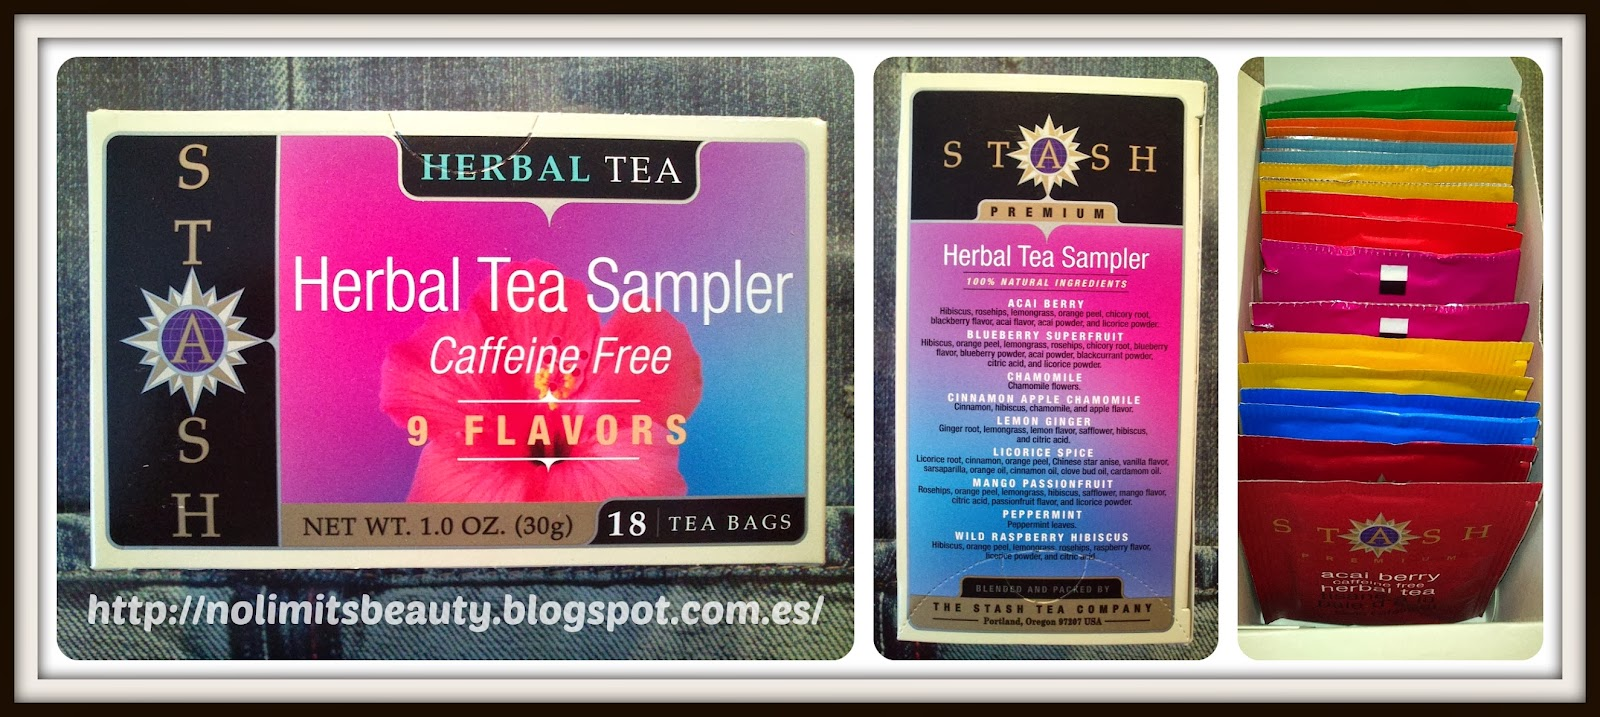 iHerb - Herbal tea sampler - Stash